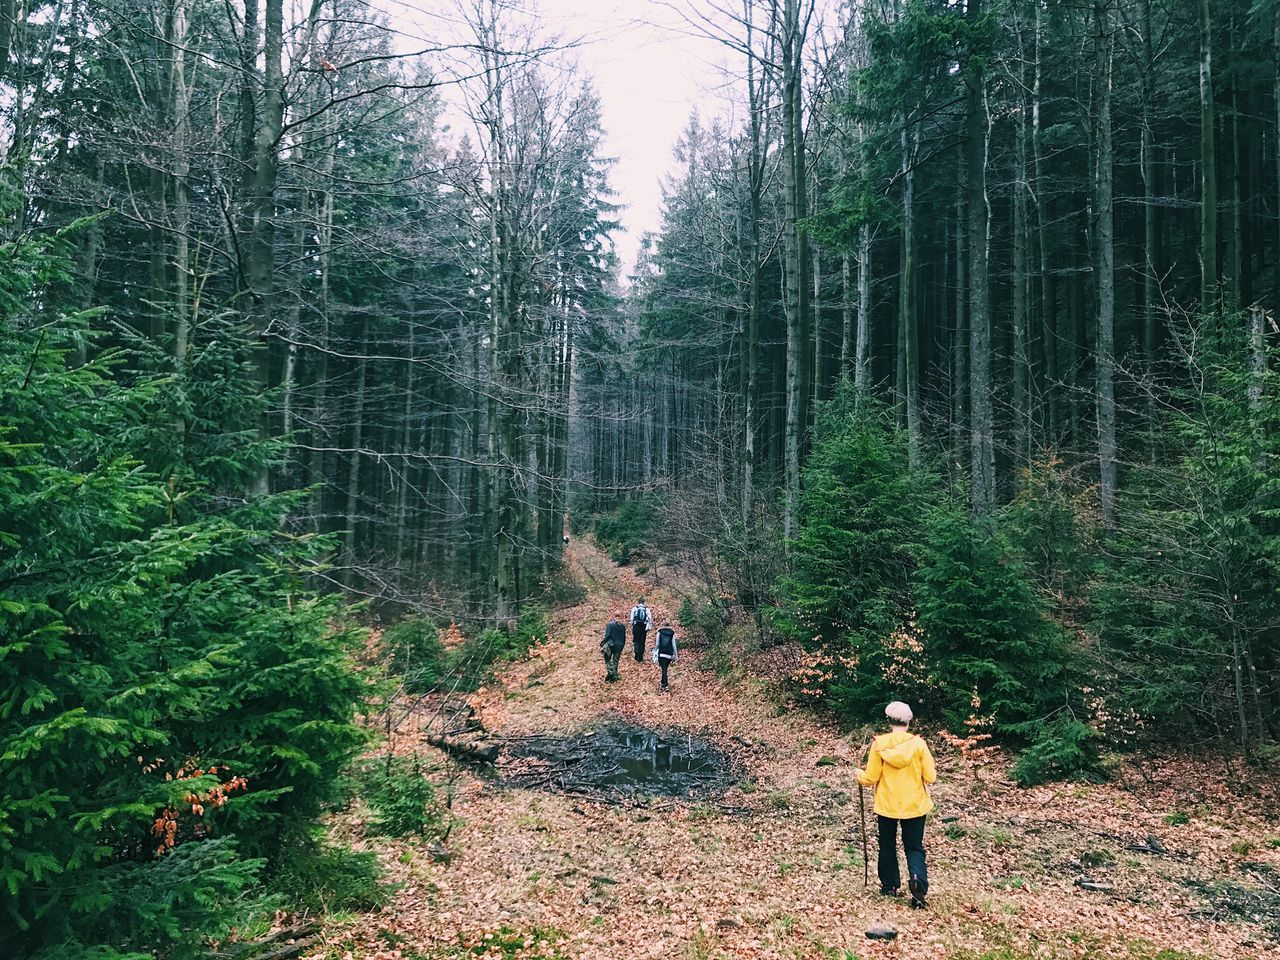 Friends Hiking On Pathway Amidst Trees In Forest